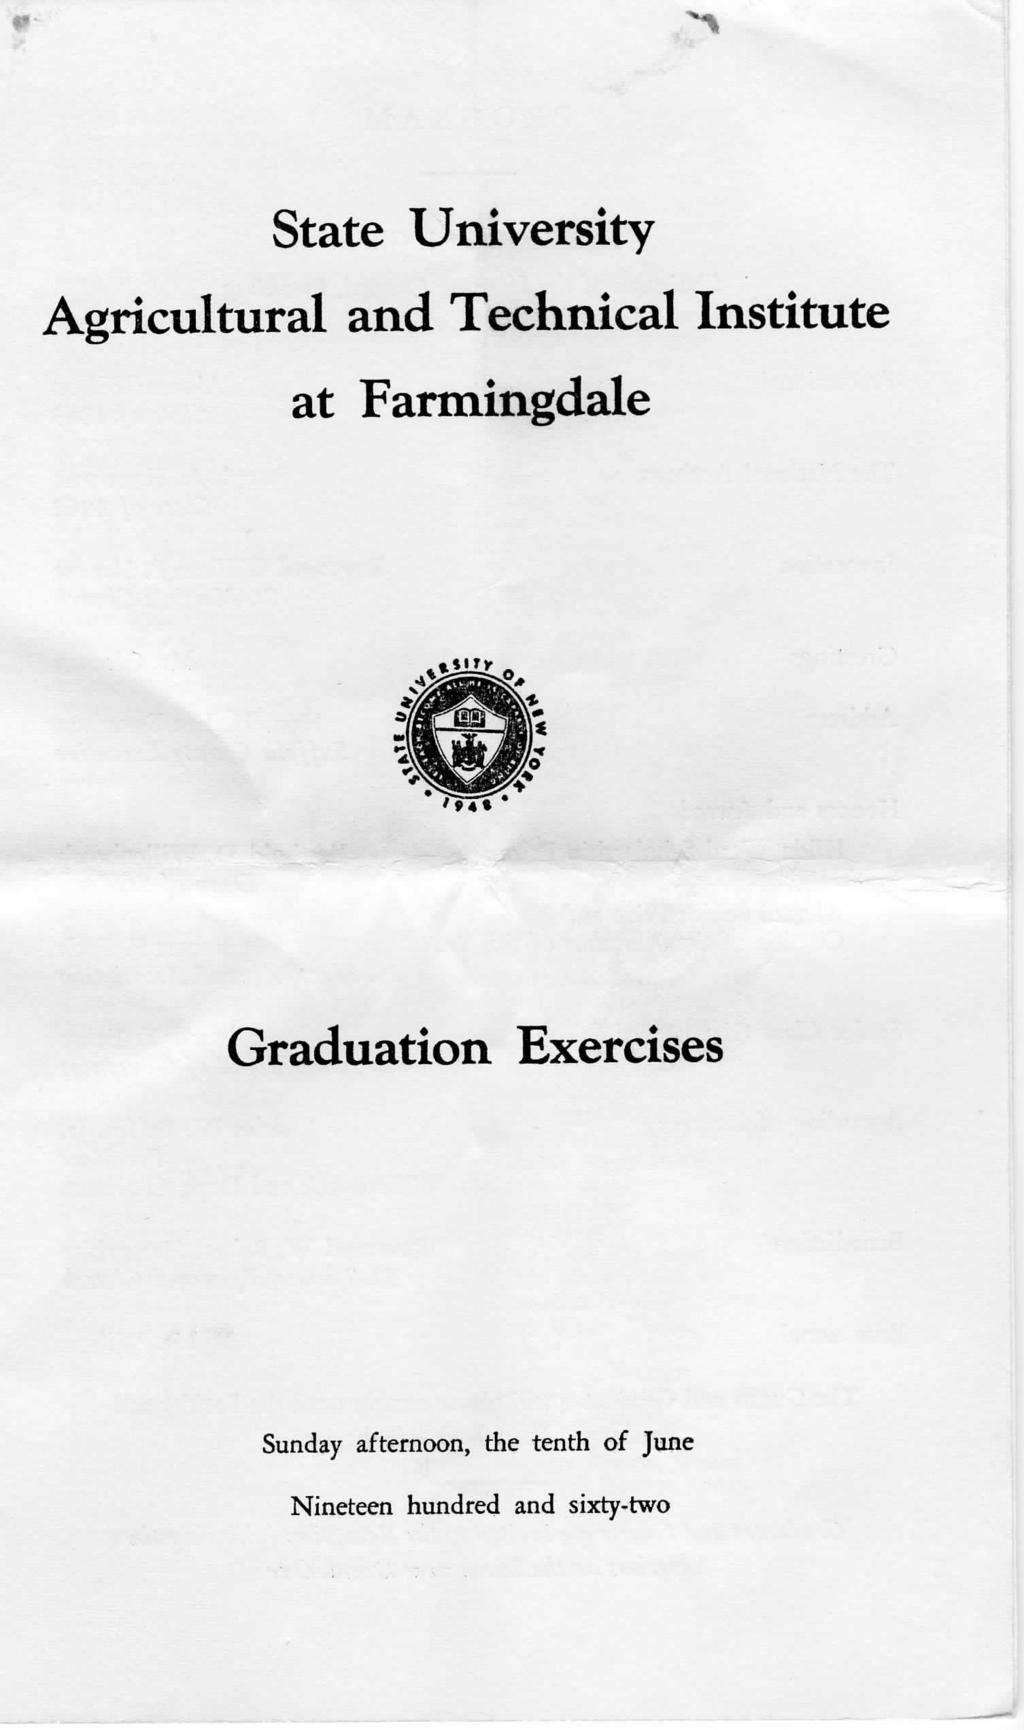 State University Agricultural and Technical Institute at Farmingdale